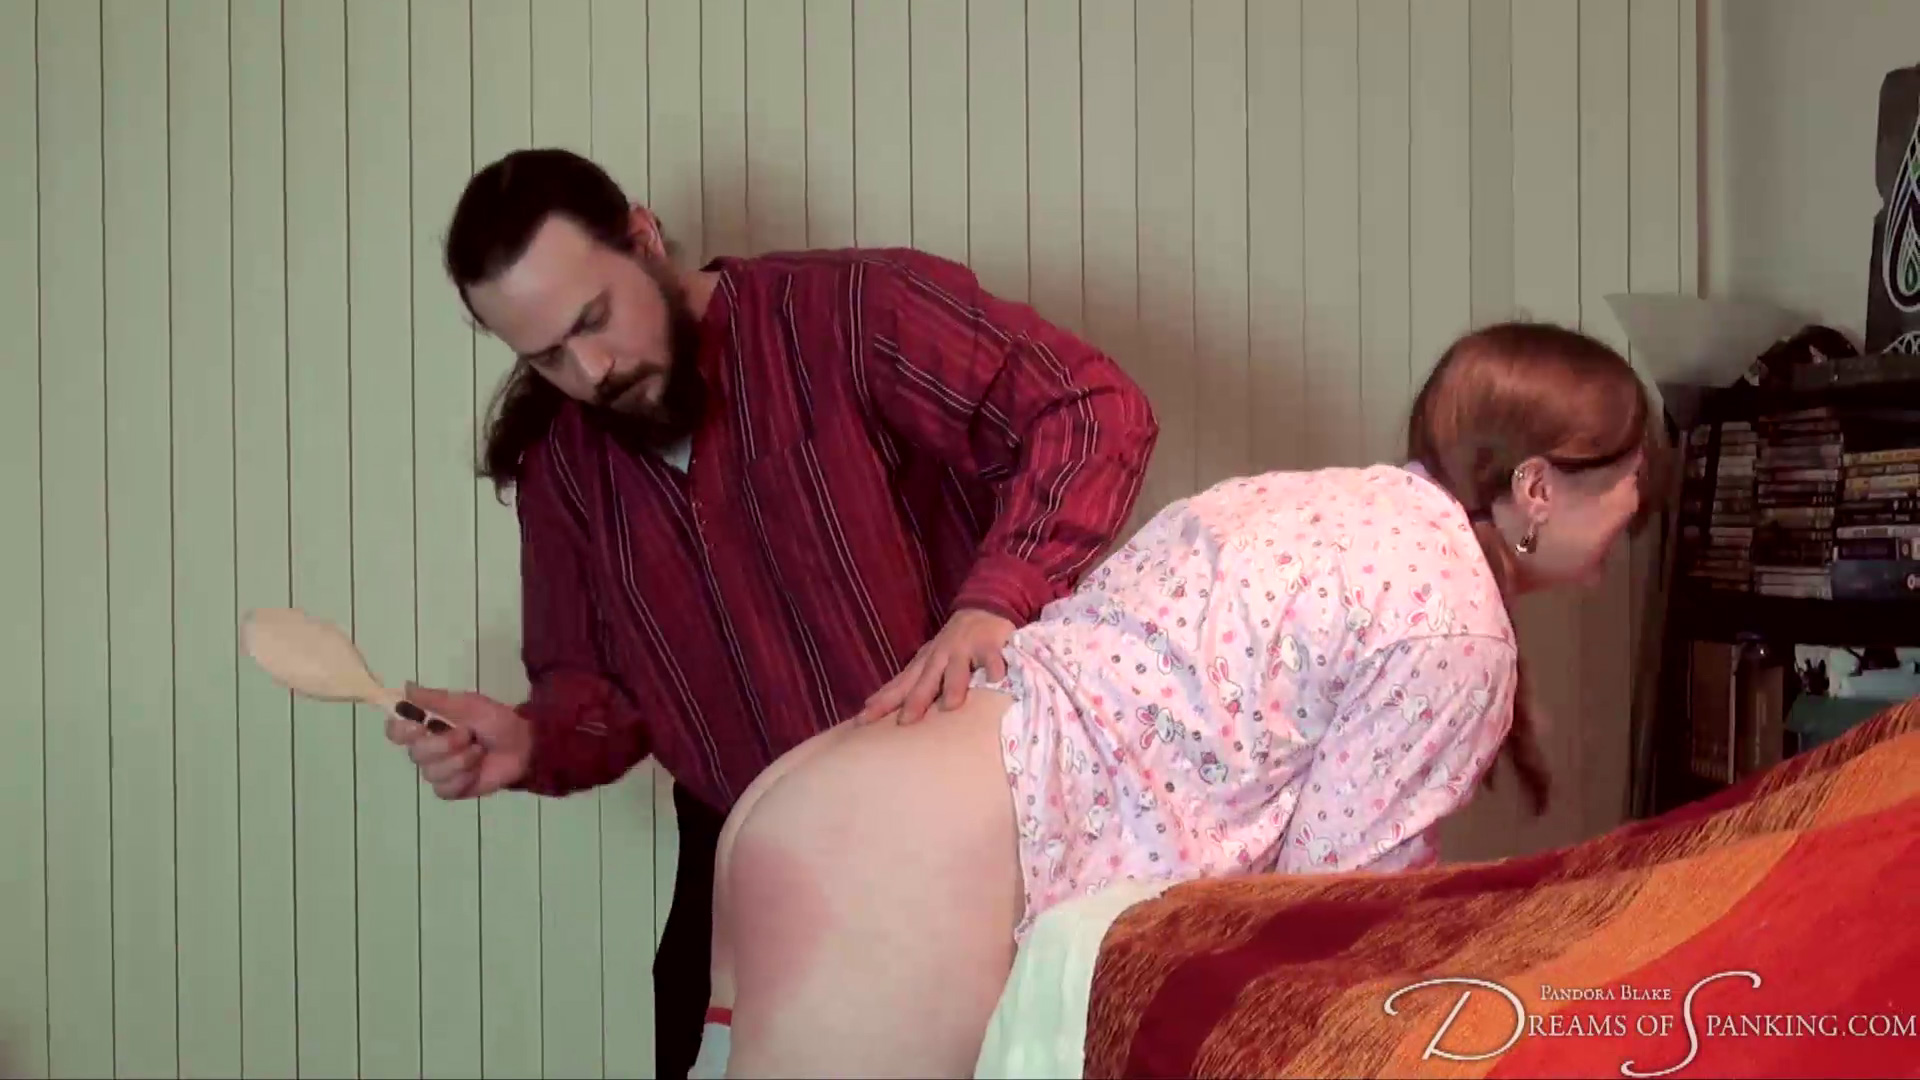 Alex Reynolds and Pandora Blake spanked for building a sofa fort, at Dreams of Spanking